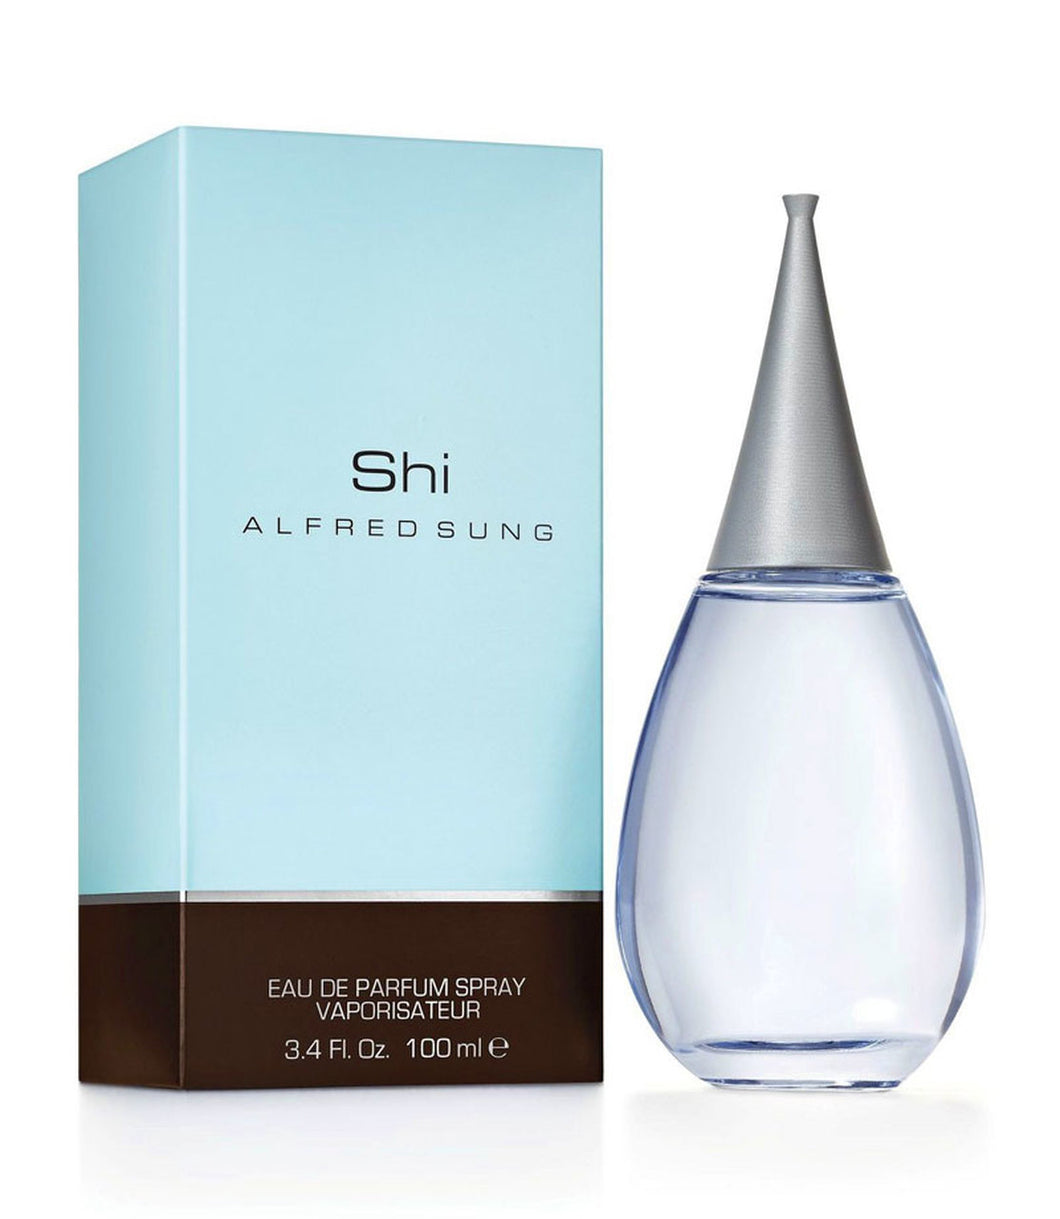 Shi EDP by Alfred Sung for Women